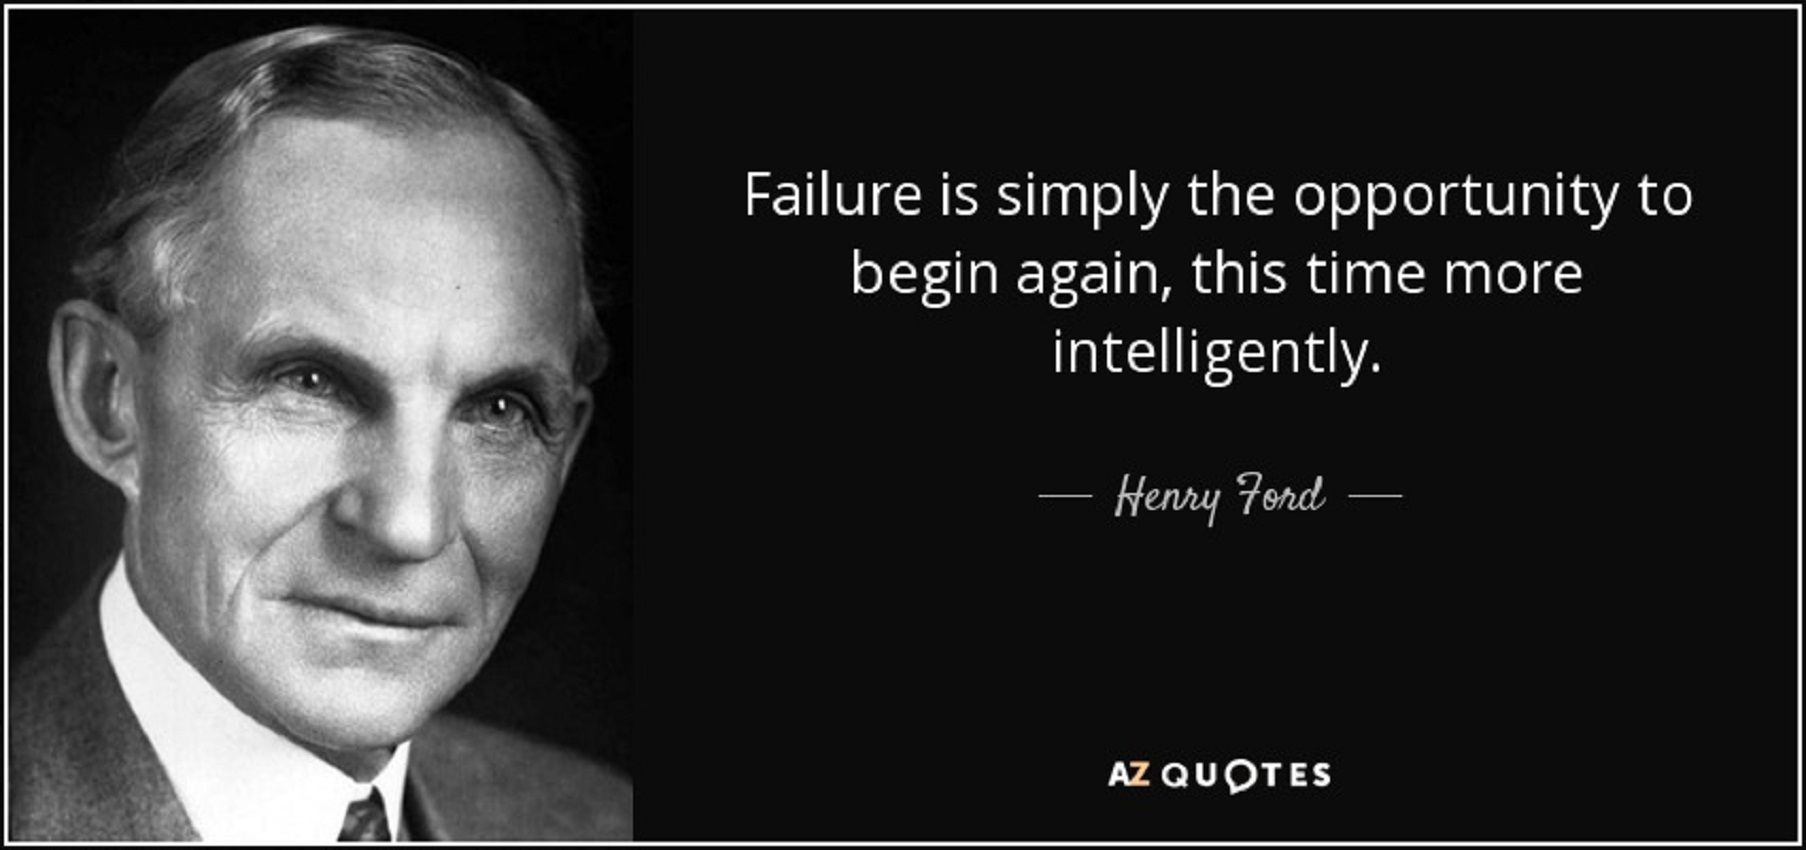 Failure Is Simply The Opportunity To Begin Again But This Time More Henry Ford 850 Ford Quotes Henry Ford Quotes Teamwork Quotes Motivational